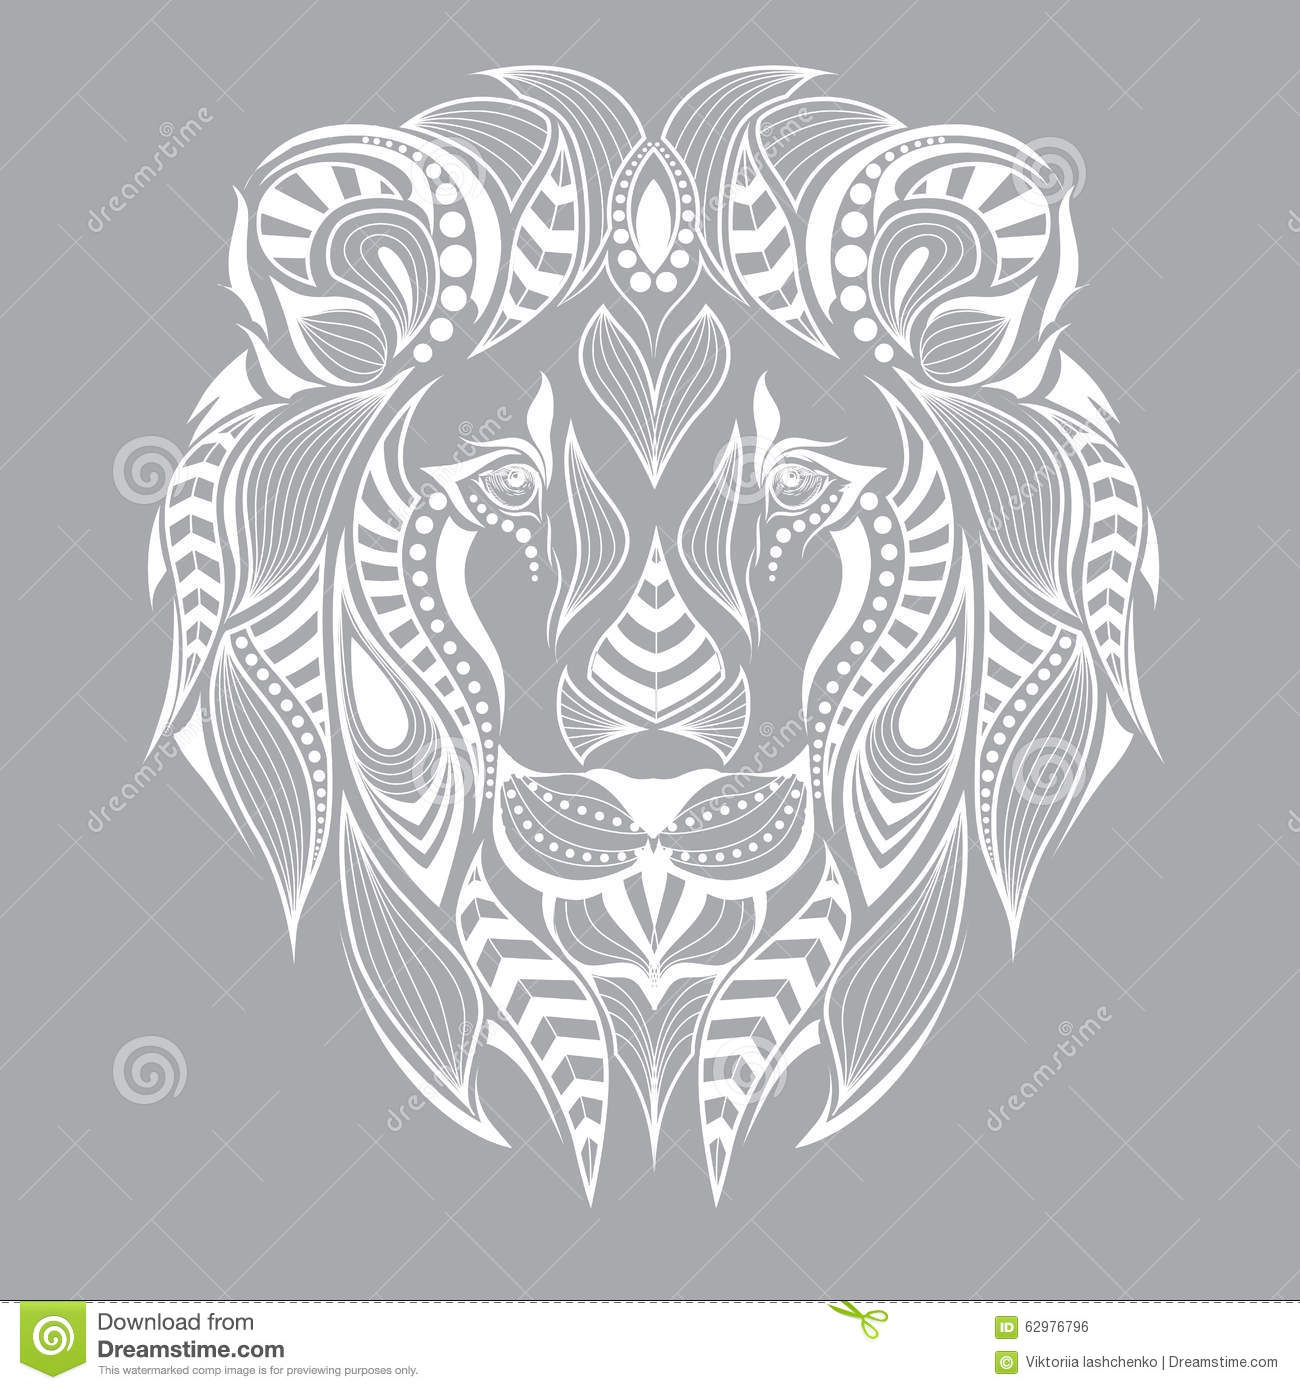 Patterned head of the lion african indian totem tattoo patterned head of the lion african indian totem tattoo design it may be used for design of a t shirt bag postcard and po buycottarizona